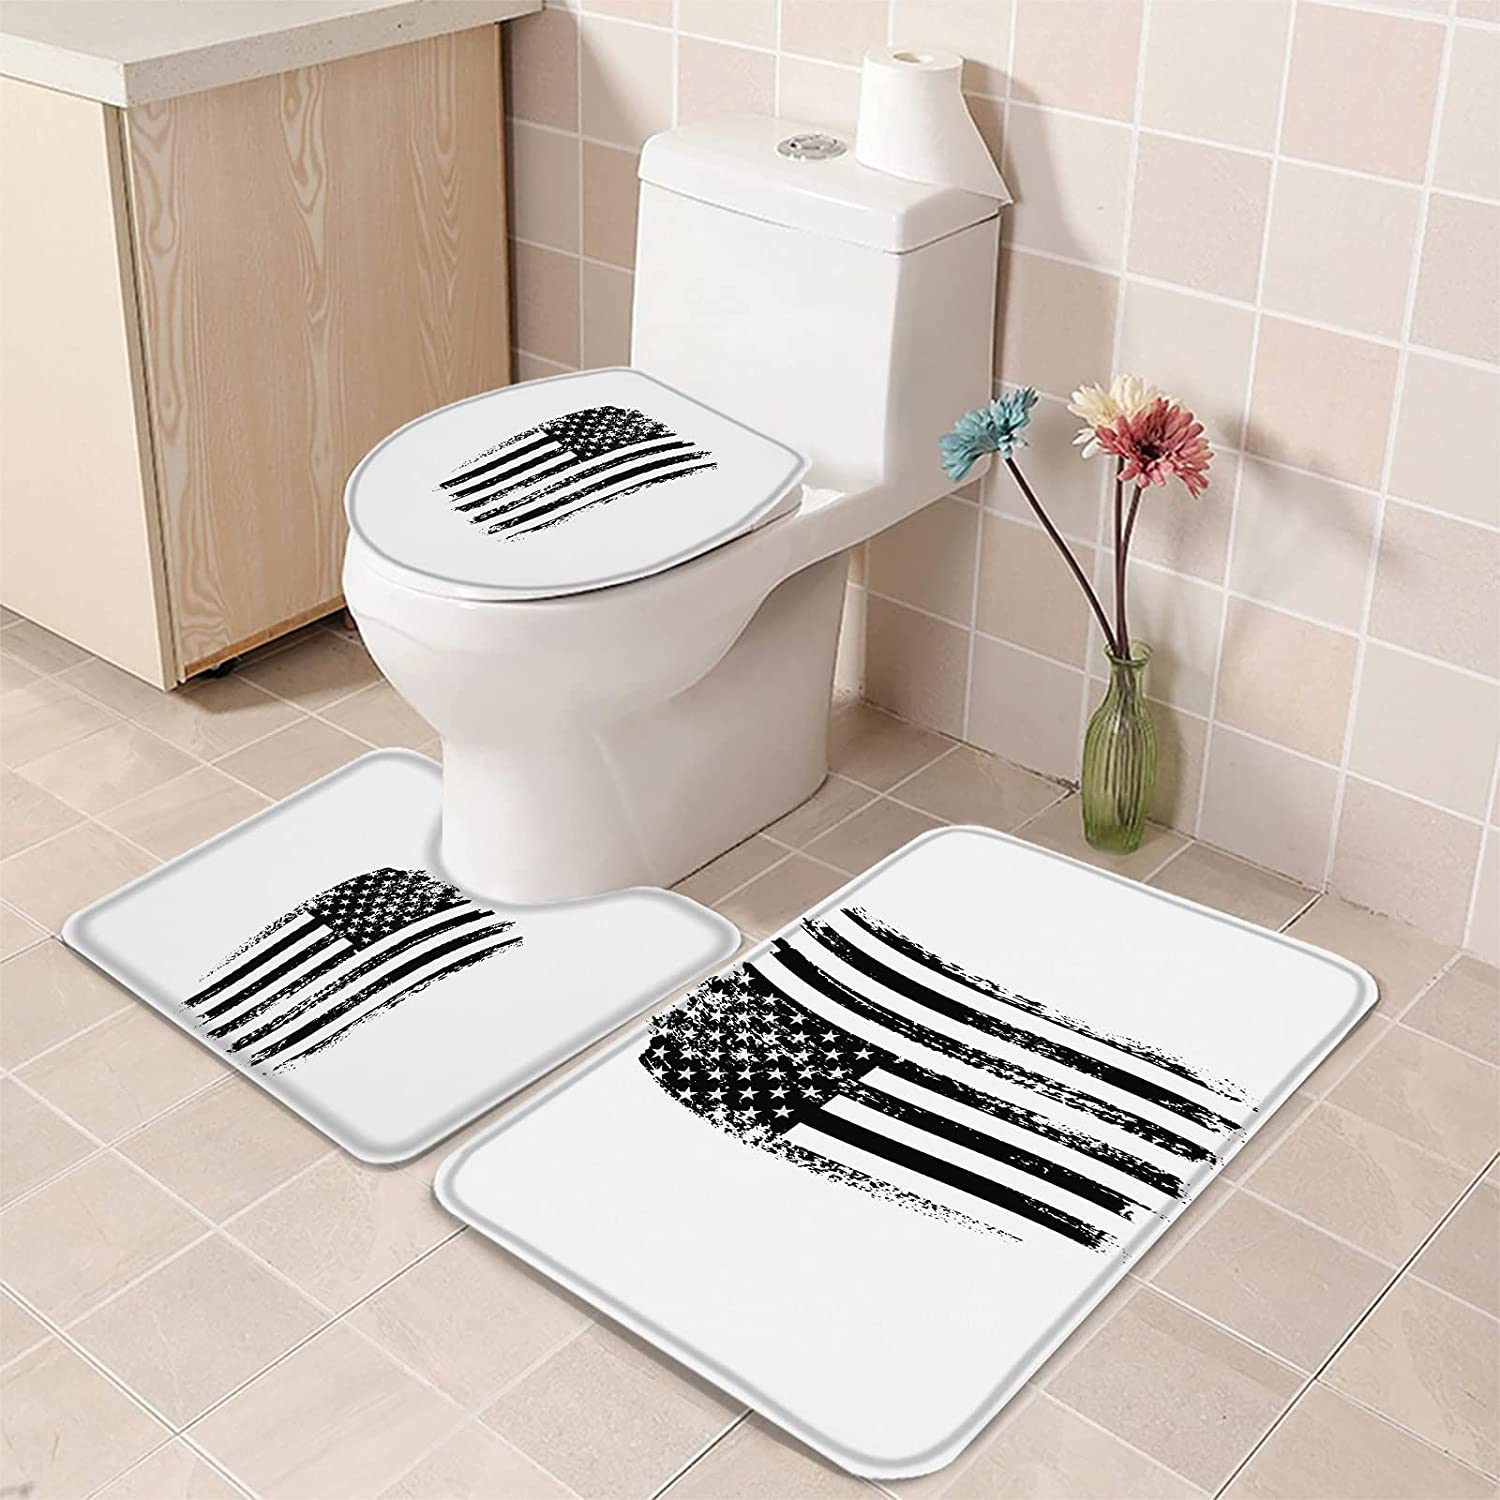 Bath Rug Set 3 Piece Independence American Wh and Day Max 70% OFF Flag Black Nashville-Davidson Mall